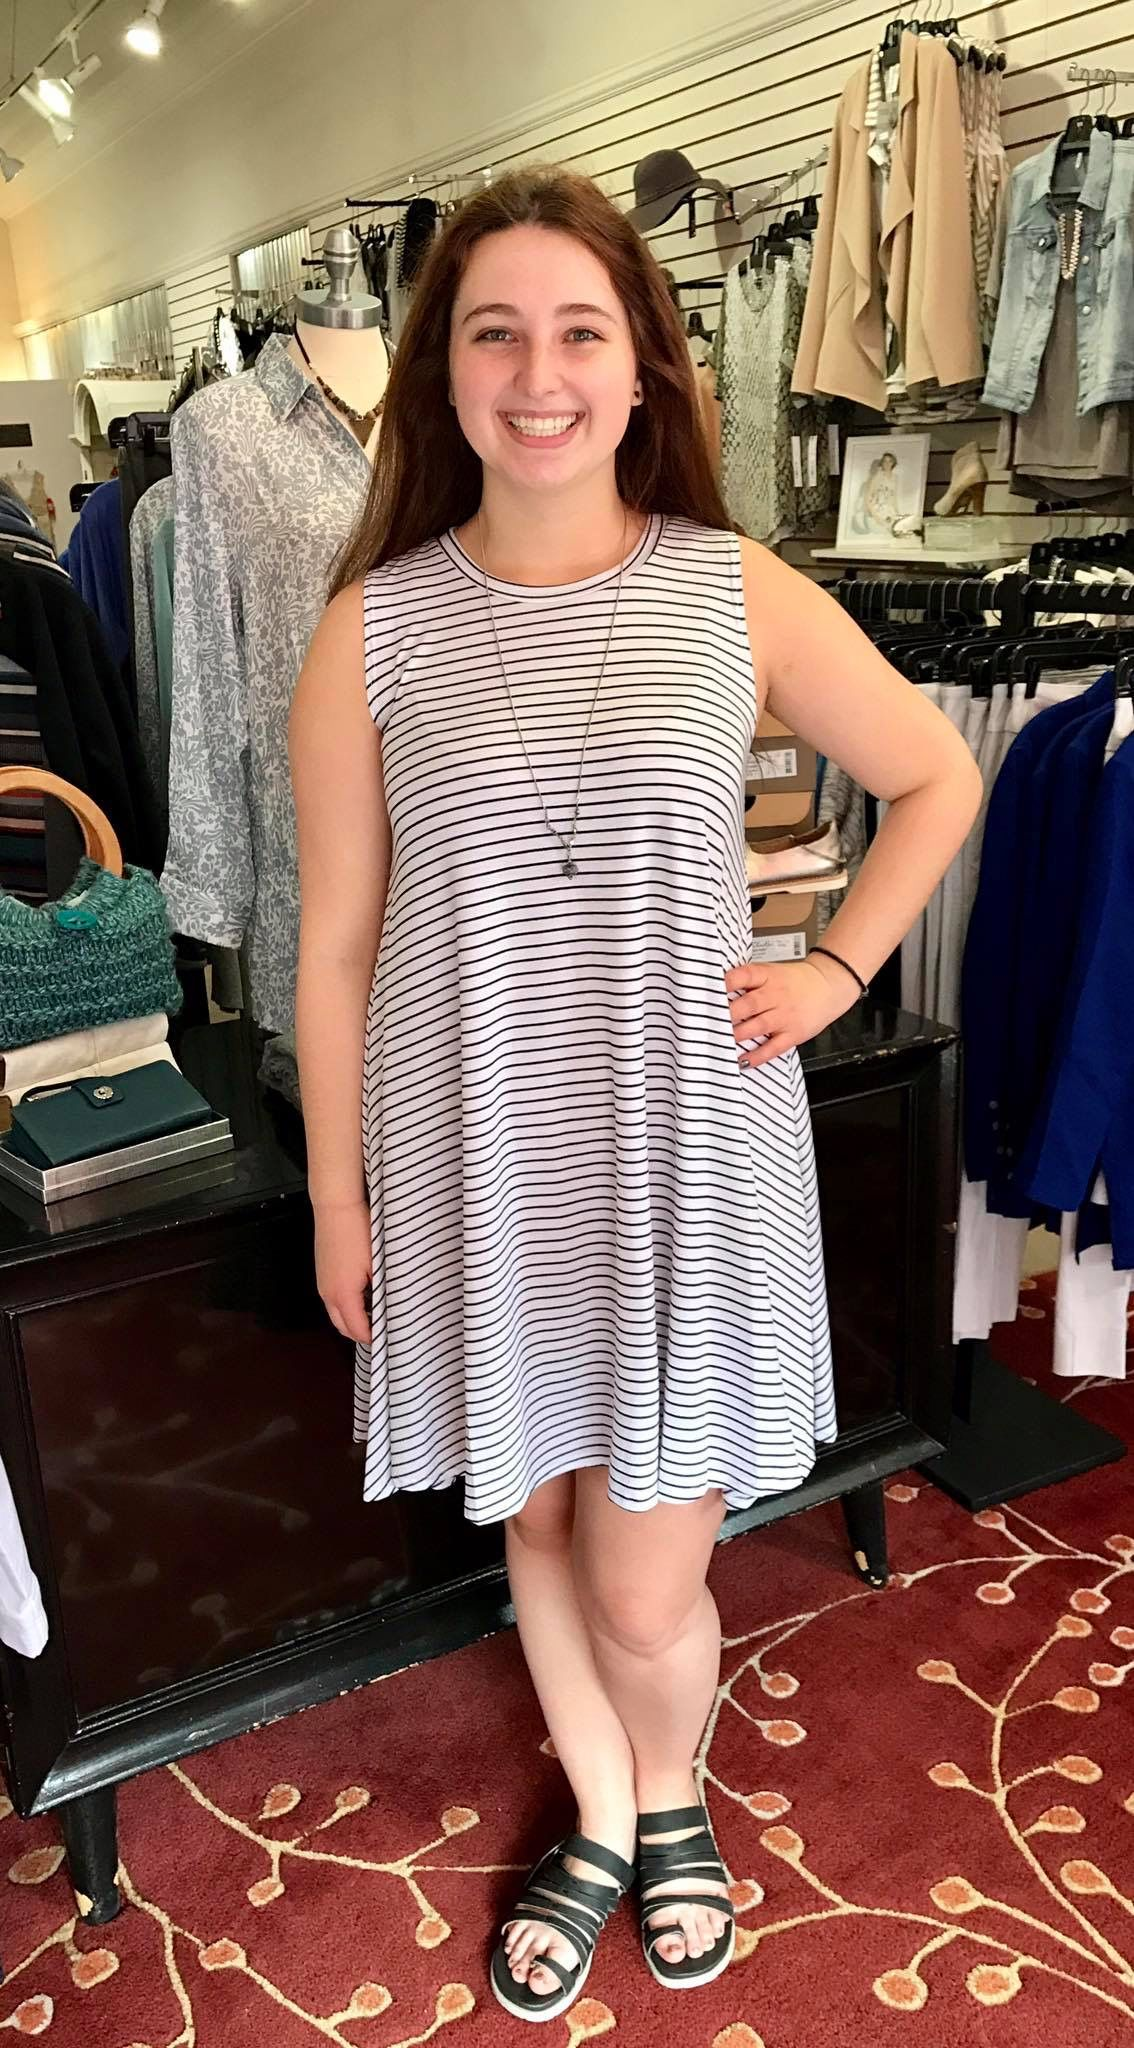 Our new black and white pin striped flounce dress by #CieloBlu! Perfect dress for a hot day! @Pipsboutique